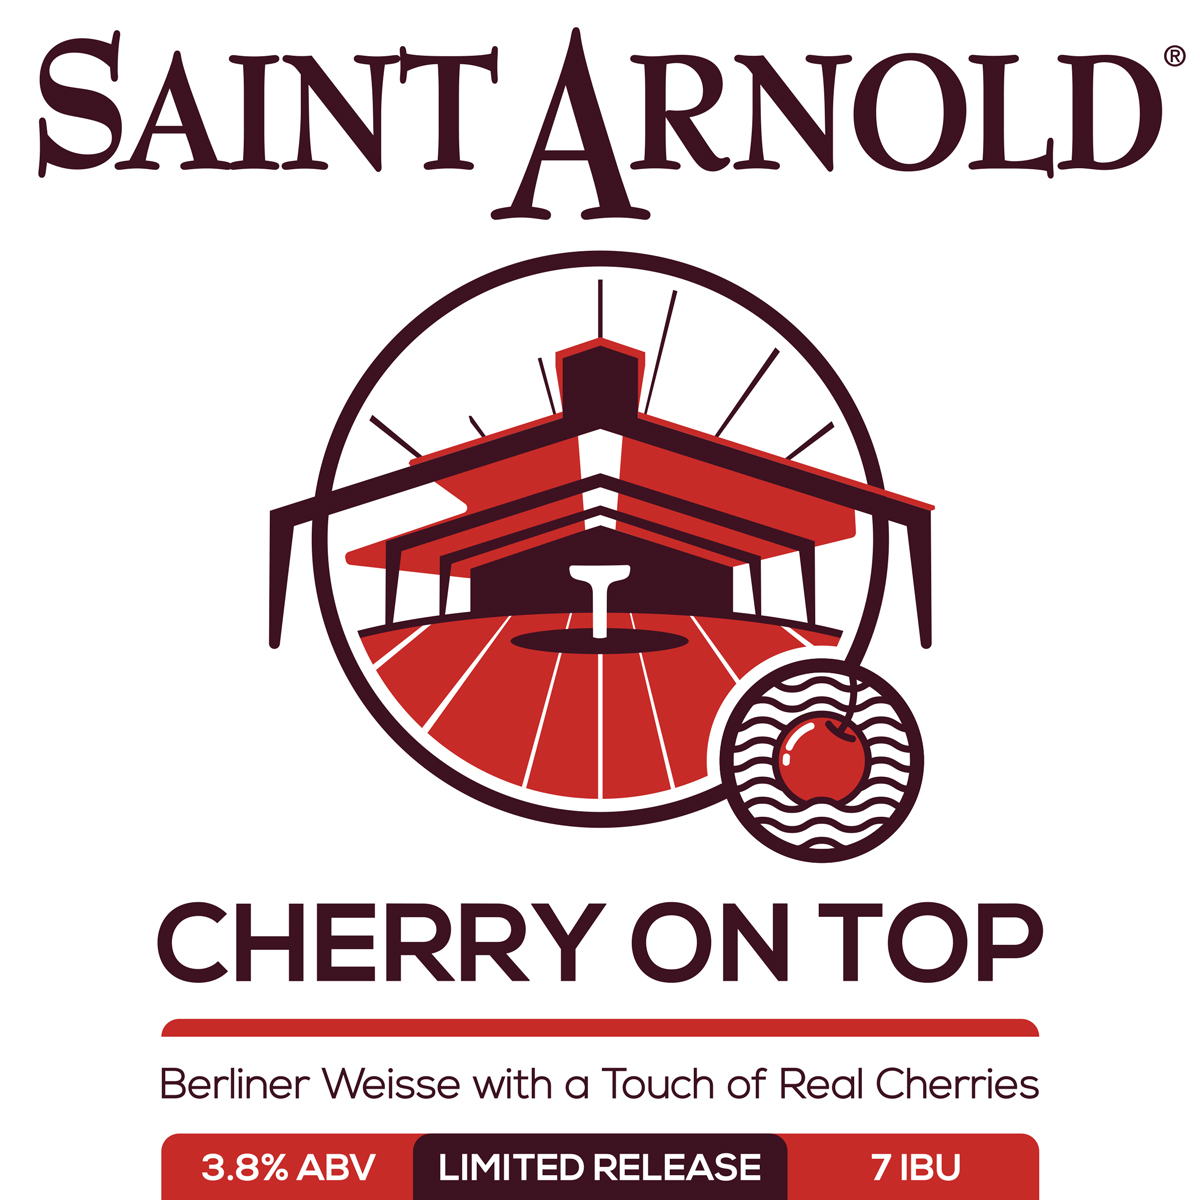 brand_image_limited_release_cherry_on_top